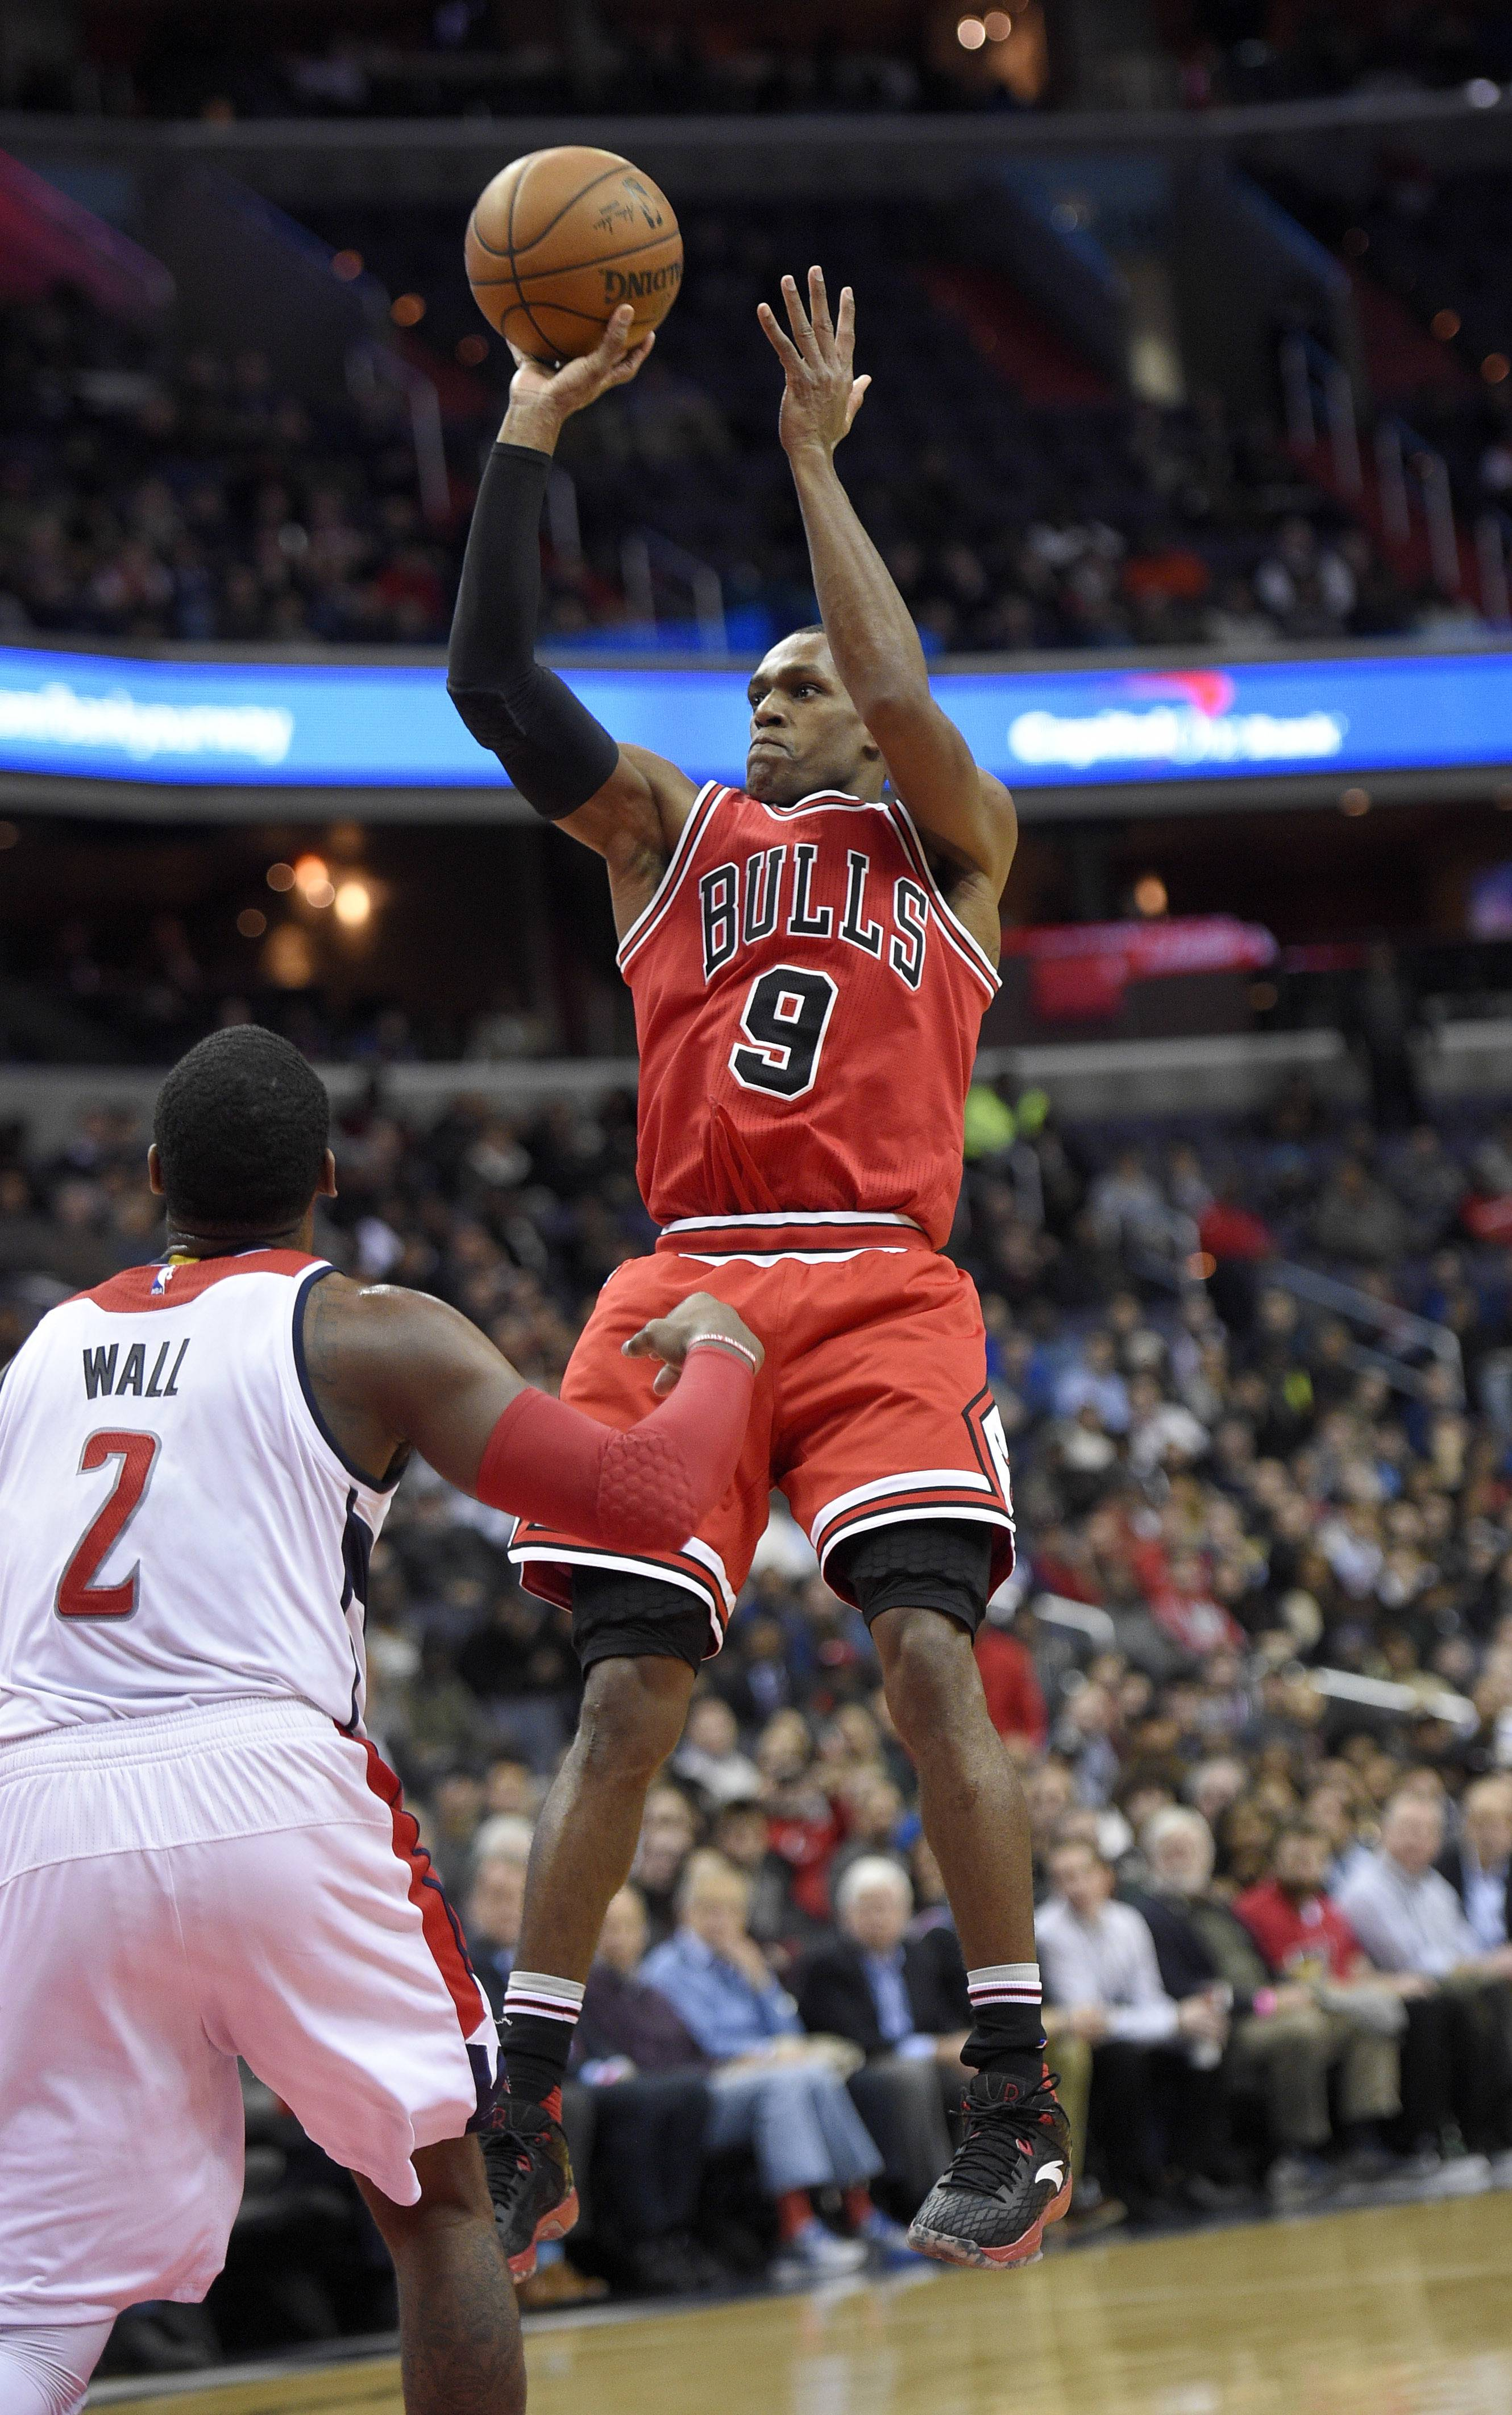 Chicago Bulls guard Rajon Rondo (9) takes a shot against Washington Wizards guard John Wall (2) during the second half of an NBA basketball game, Tuesday, Jan. 10, 2017, in Washington. The Wizards won 101-99. (AP Photo/Nick Wass)